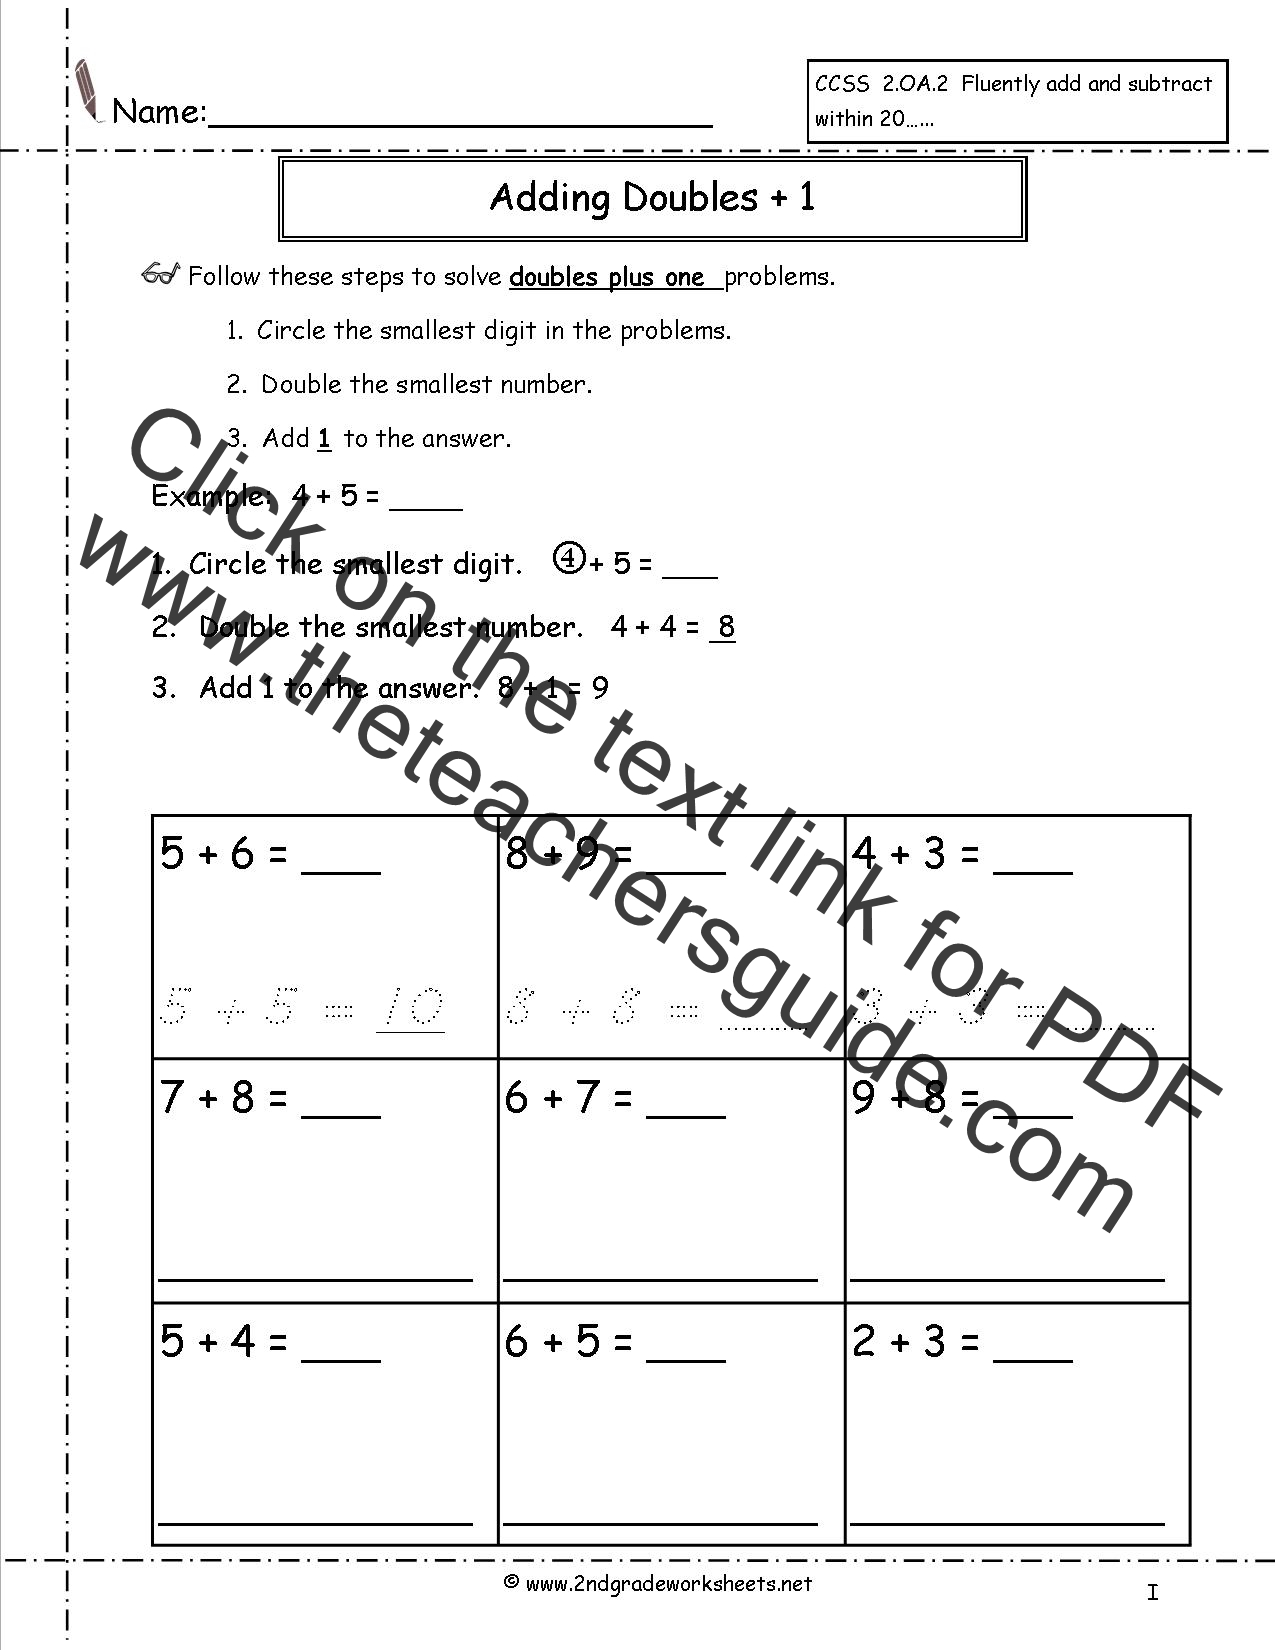 Uncategorized Doubles Facts Worksheets free single digit addition worksheets doubles plus one intro facts worksheet